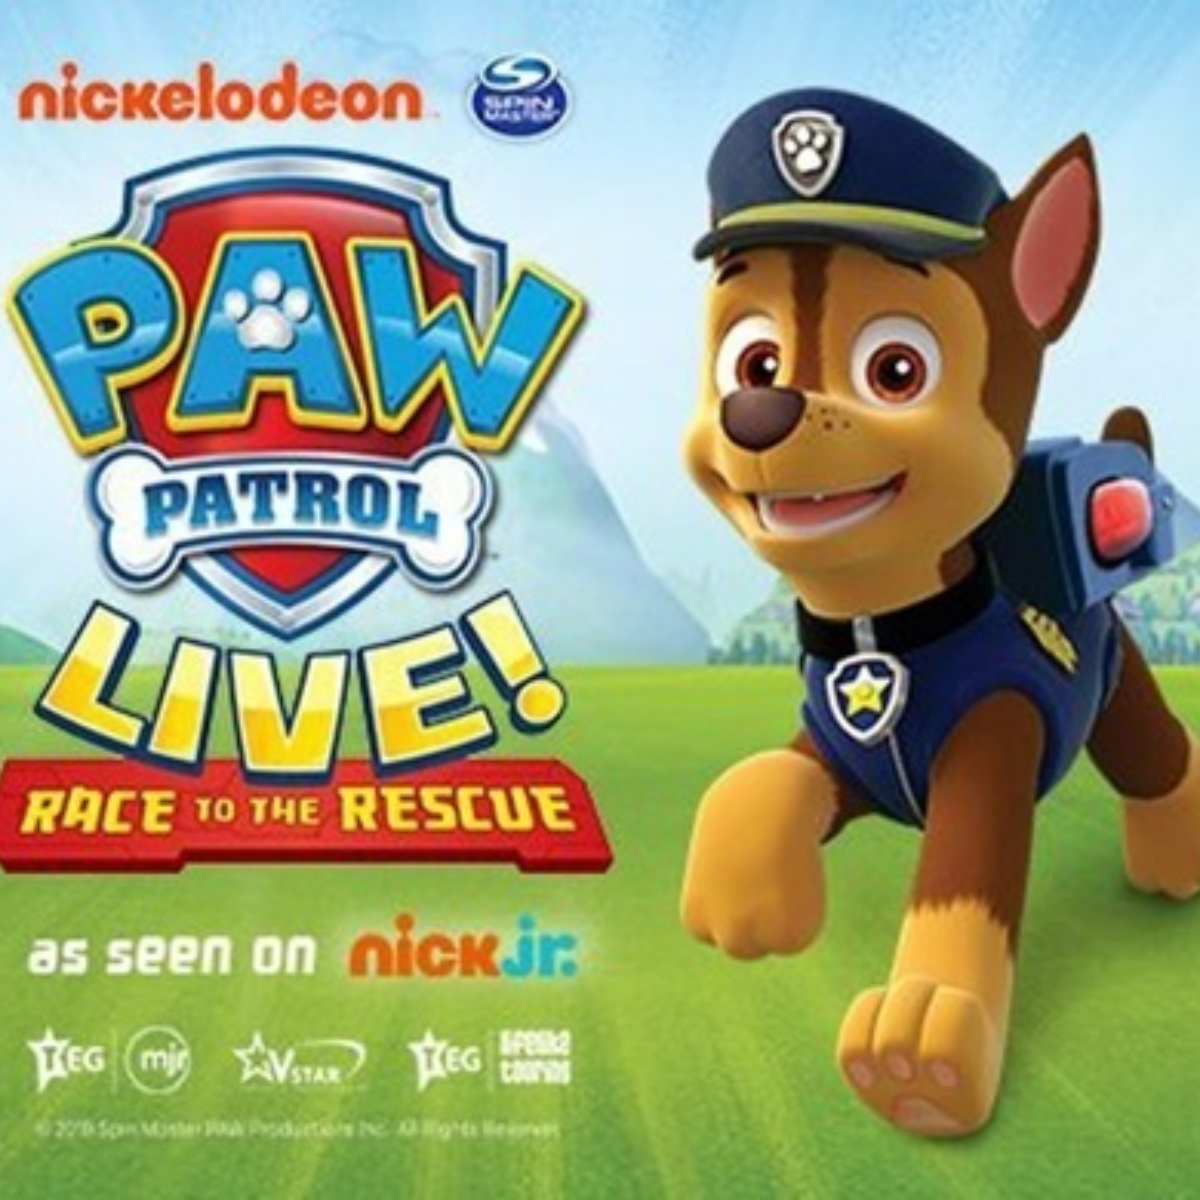 PAW PATROL LIVE! - Race to the Rescue (Belfast) Images